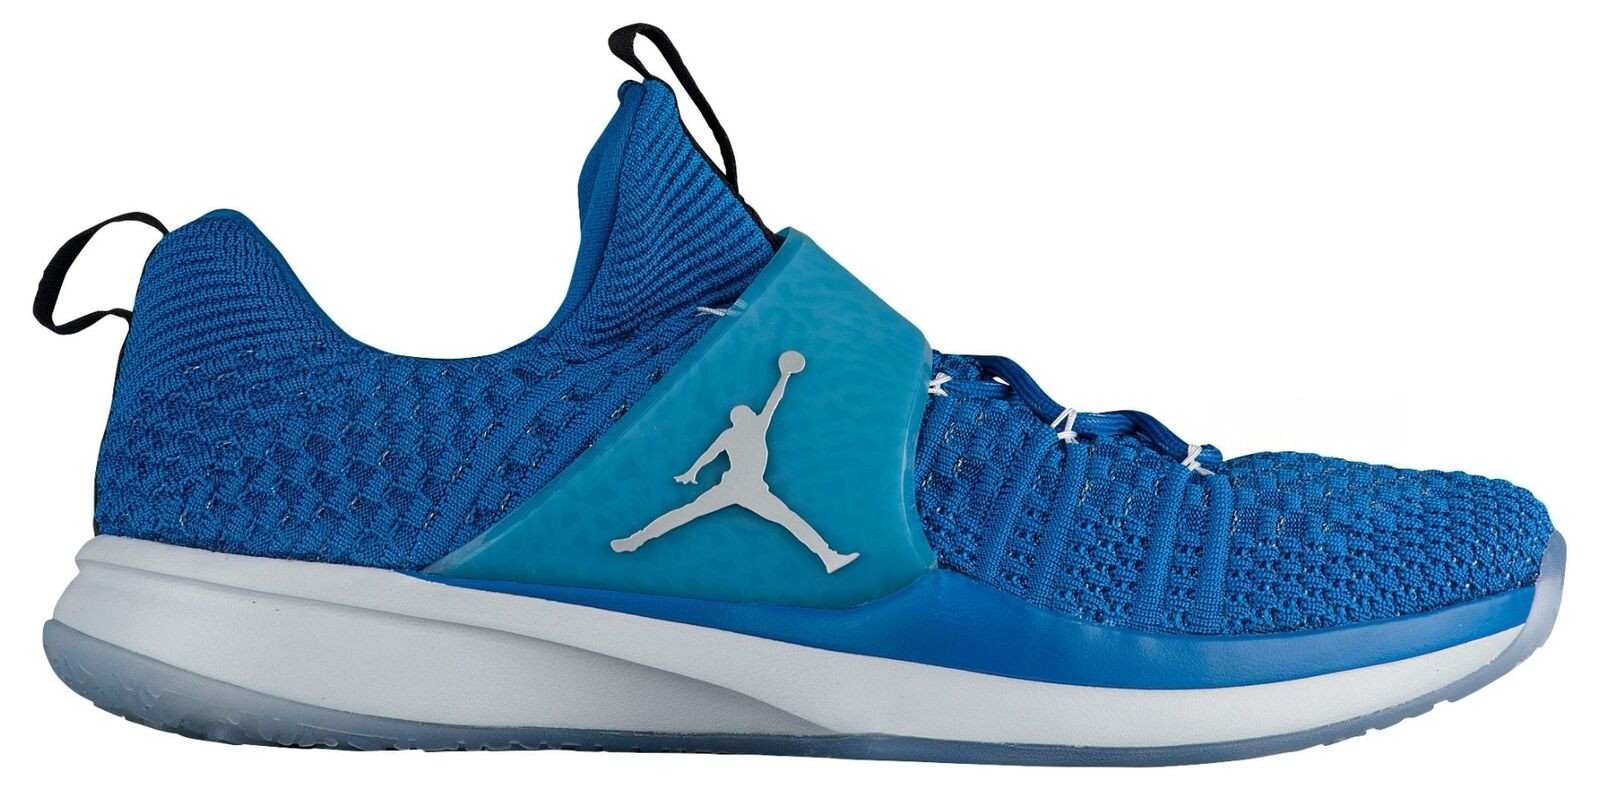 Jordan Trainer 2 Flyknit Mens 921210-402 Military Blue Training Shoes Comfortable The most popular shoes for men and women